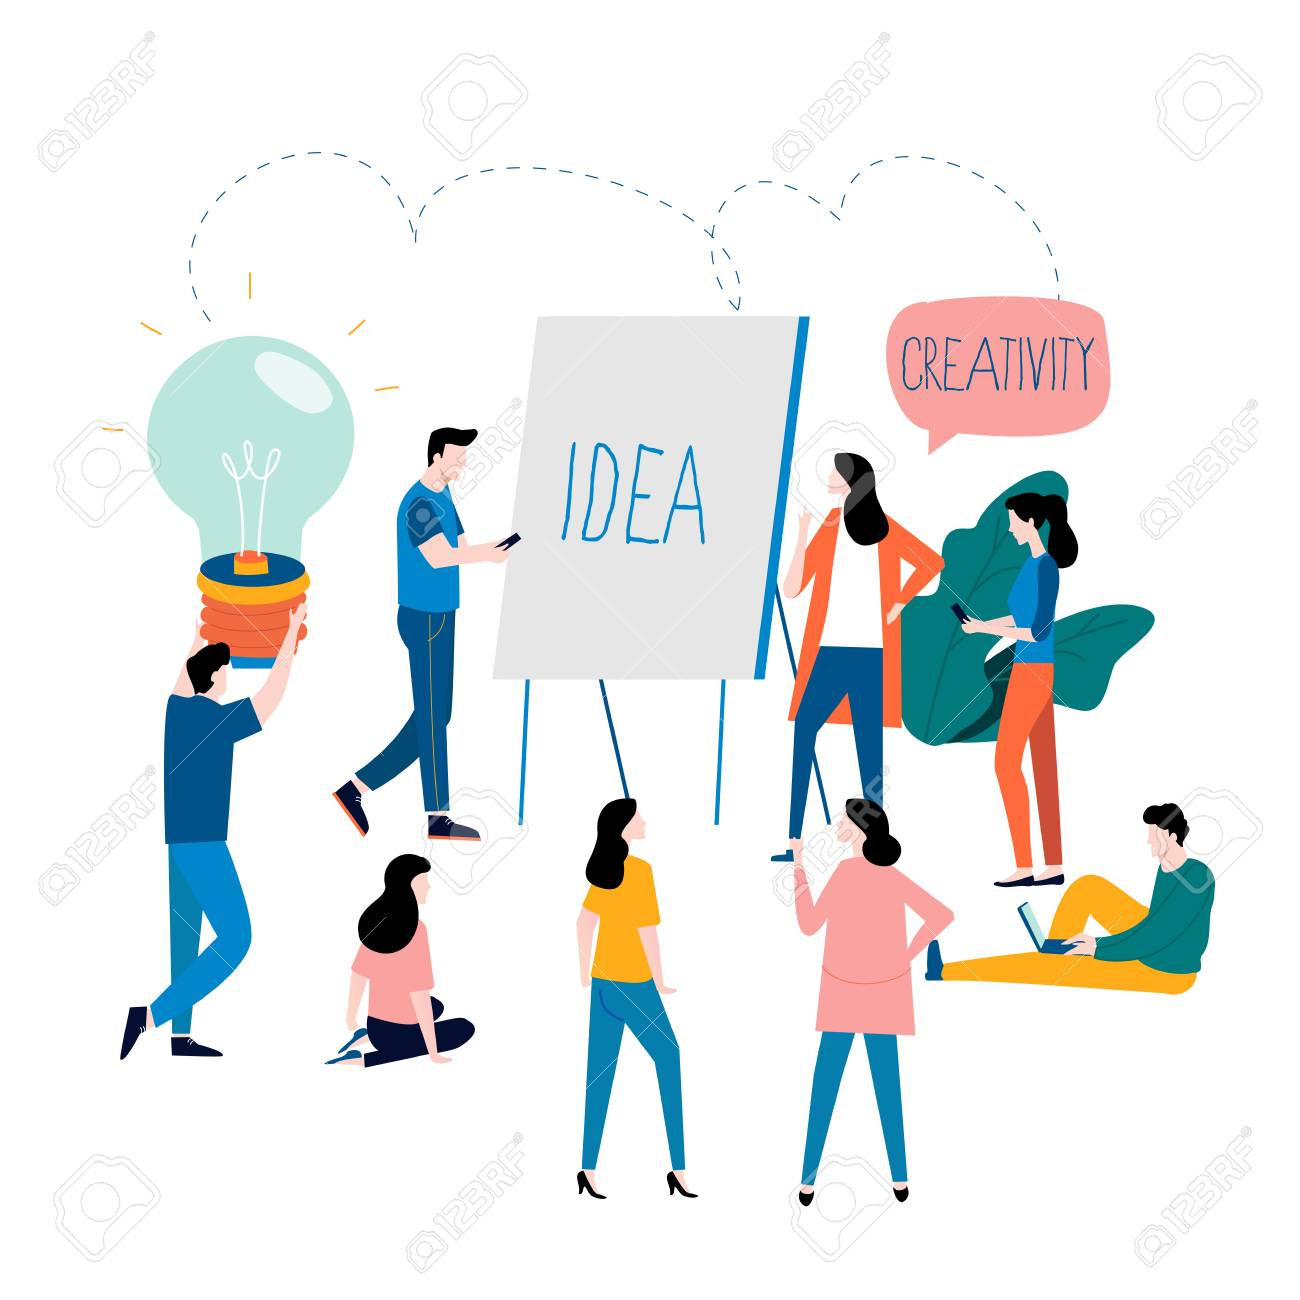 Professional training, education, online tutorial, online business courses, business presentation flat vector illustration. Expertise, skill development design for mobile and web graphics - 107313658